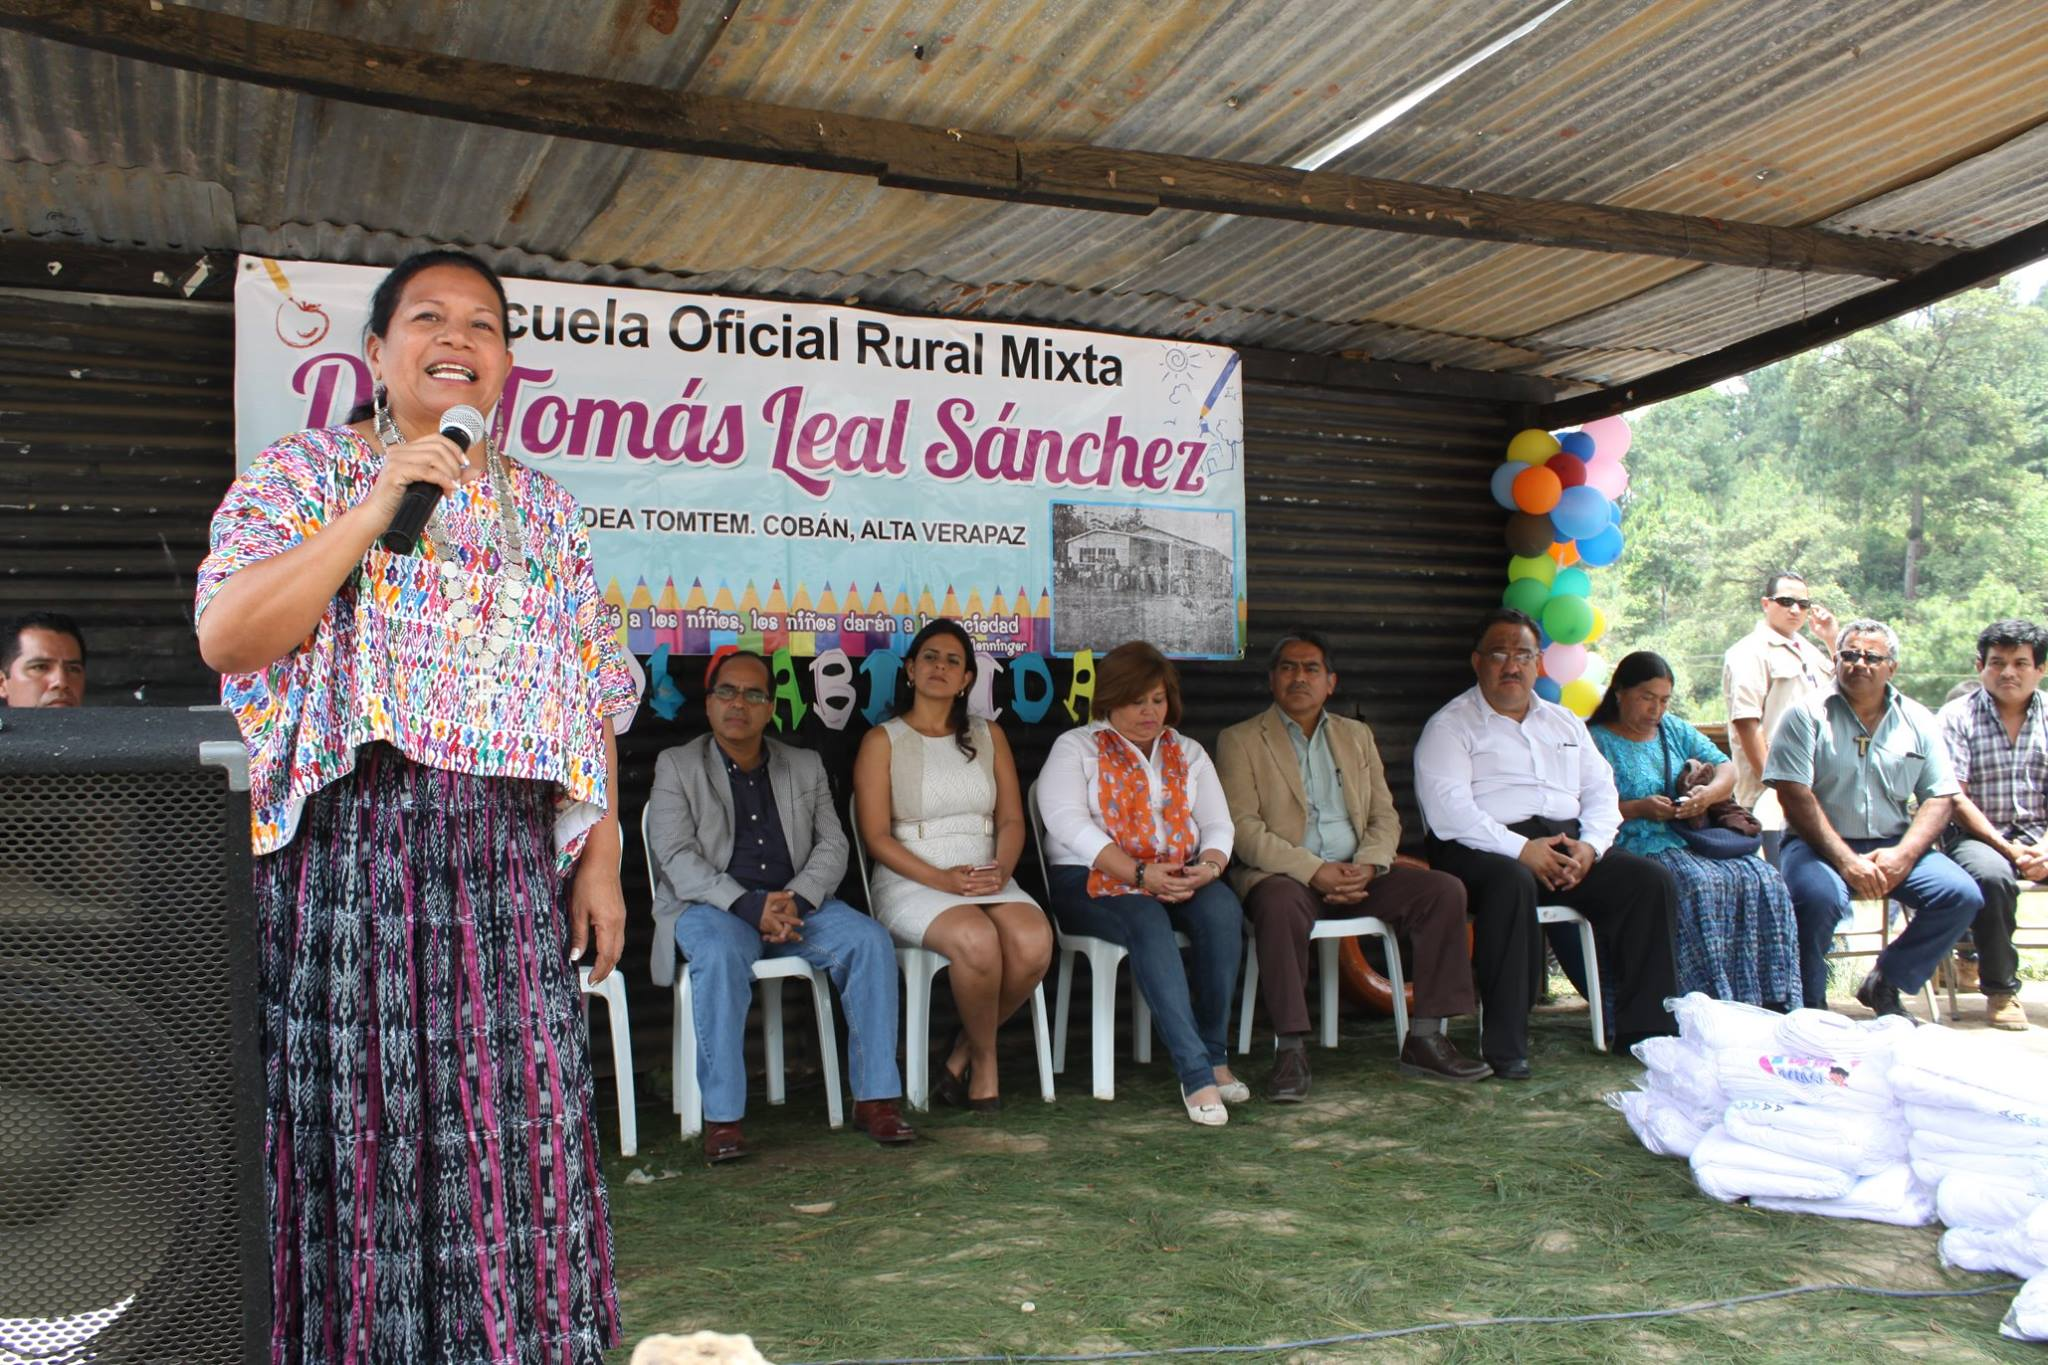 Lawmakers in Guatemala face complaint over 'stupid Indian' insult